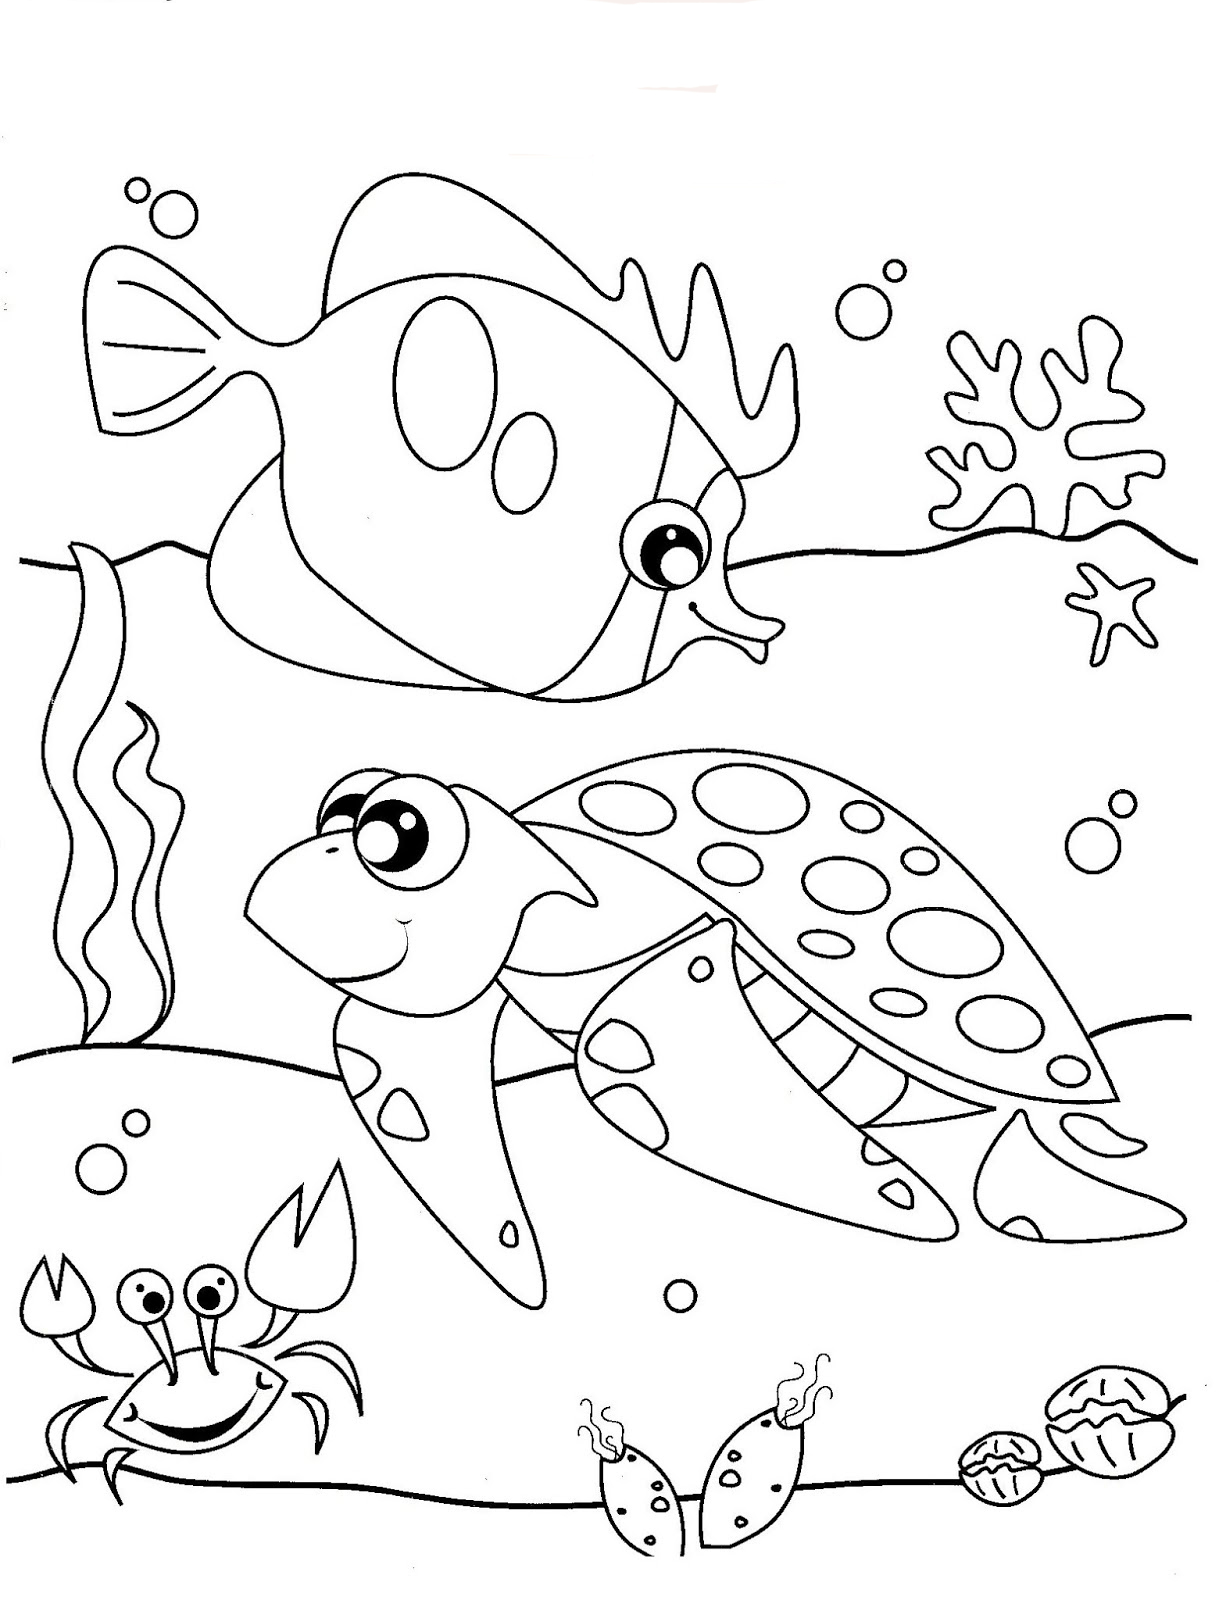 sealife coloring pages sealife coloring pages coloring pages to download and print pages sealife coloring